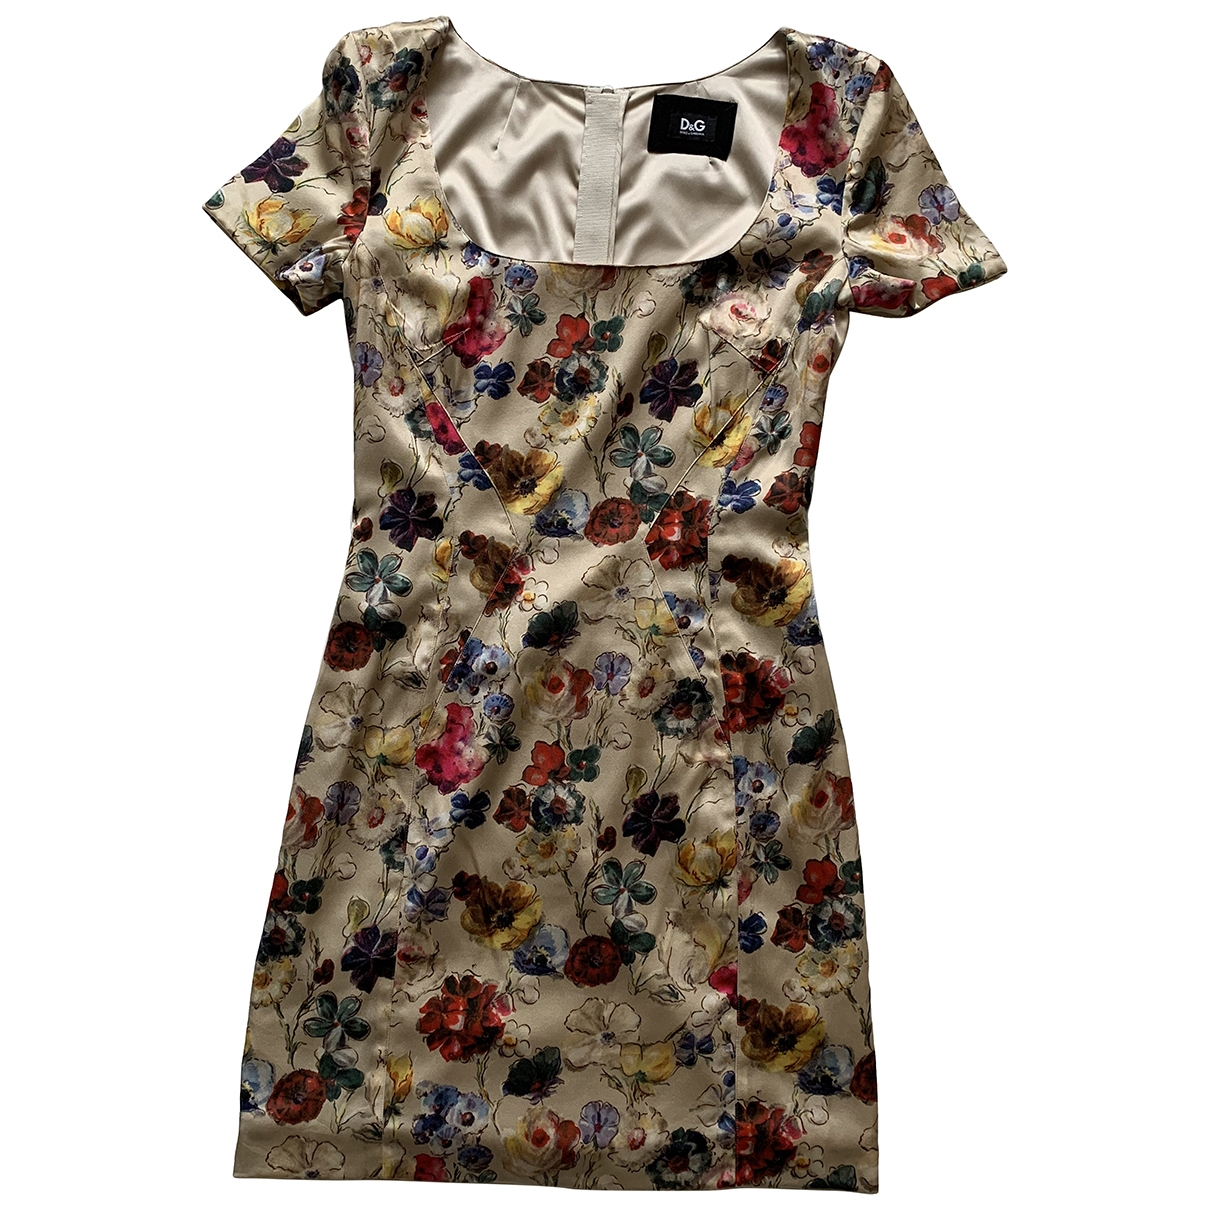 D&g \N Multicolour Silk dress for Women 40 IT